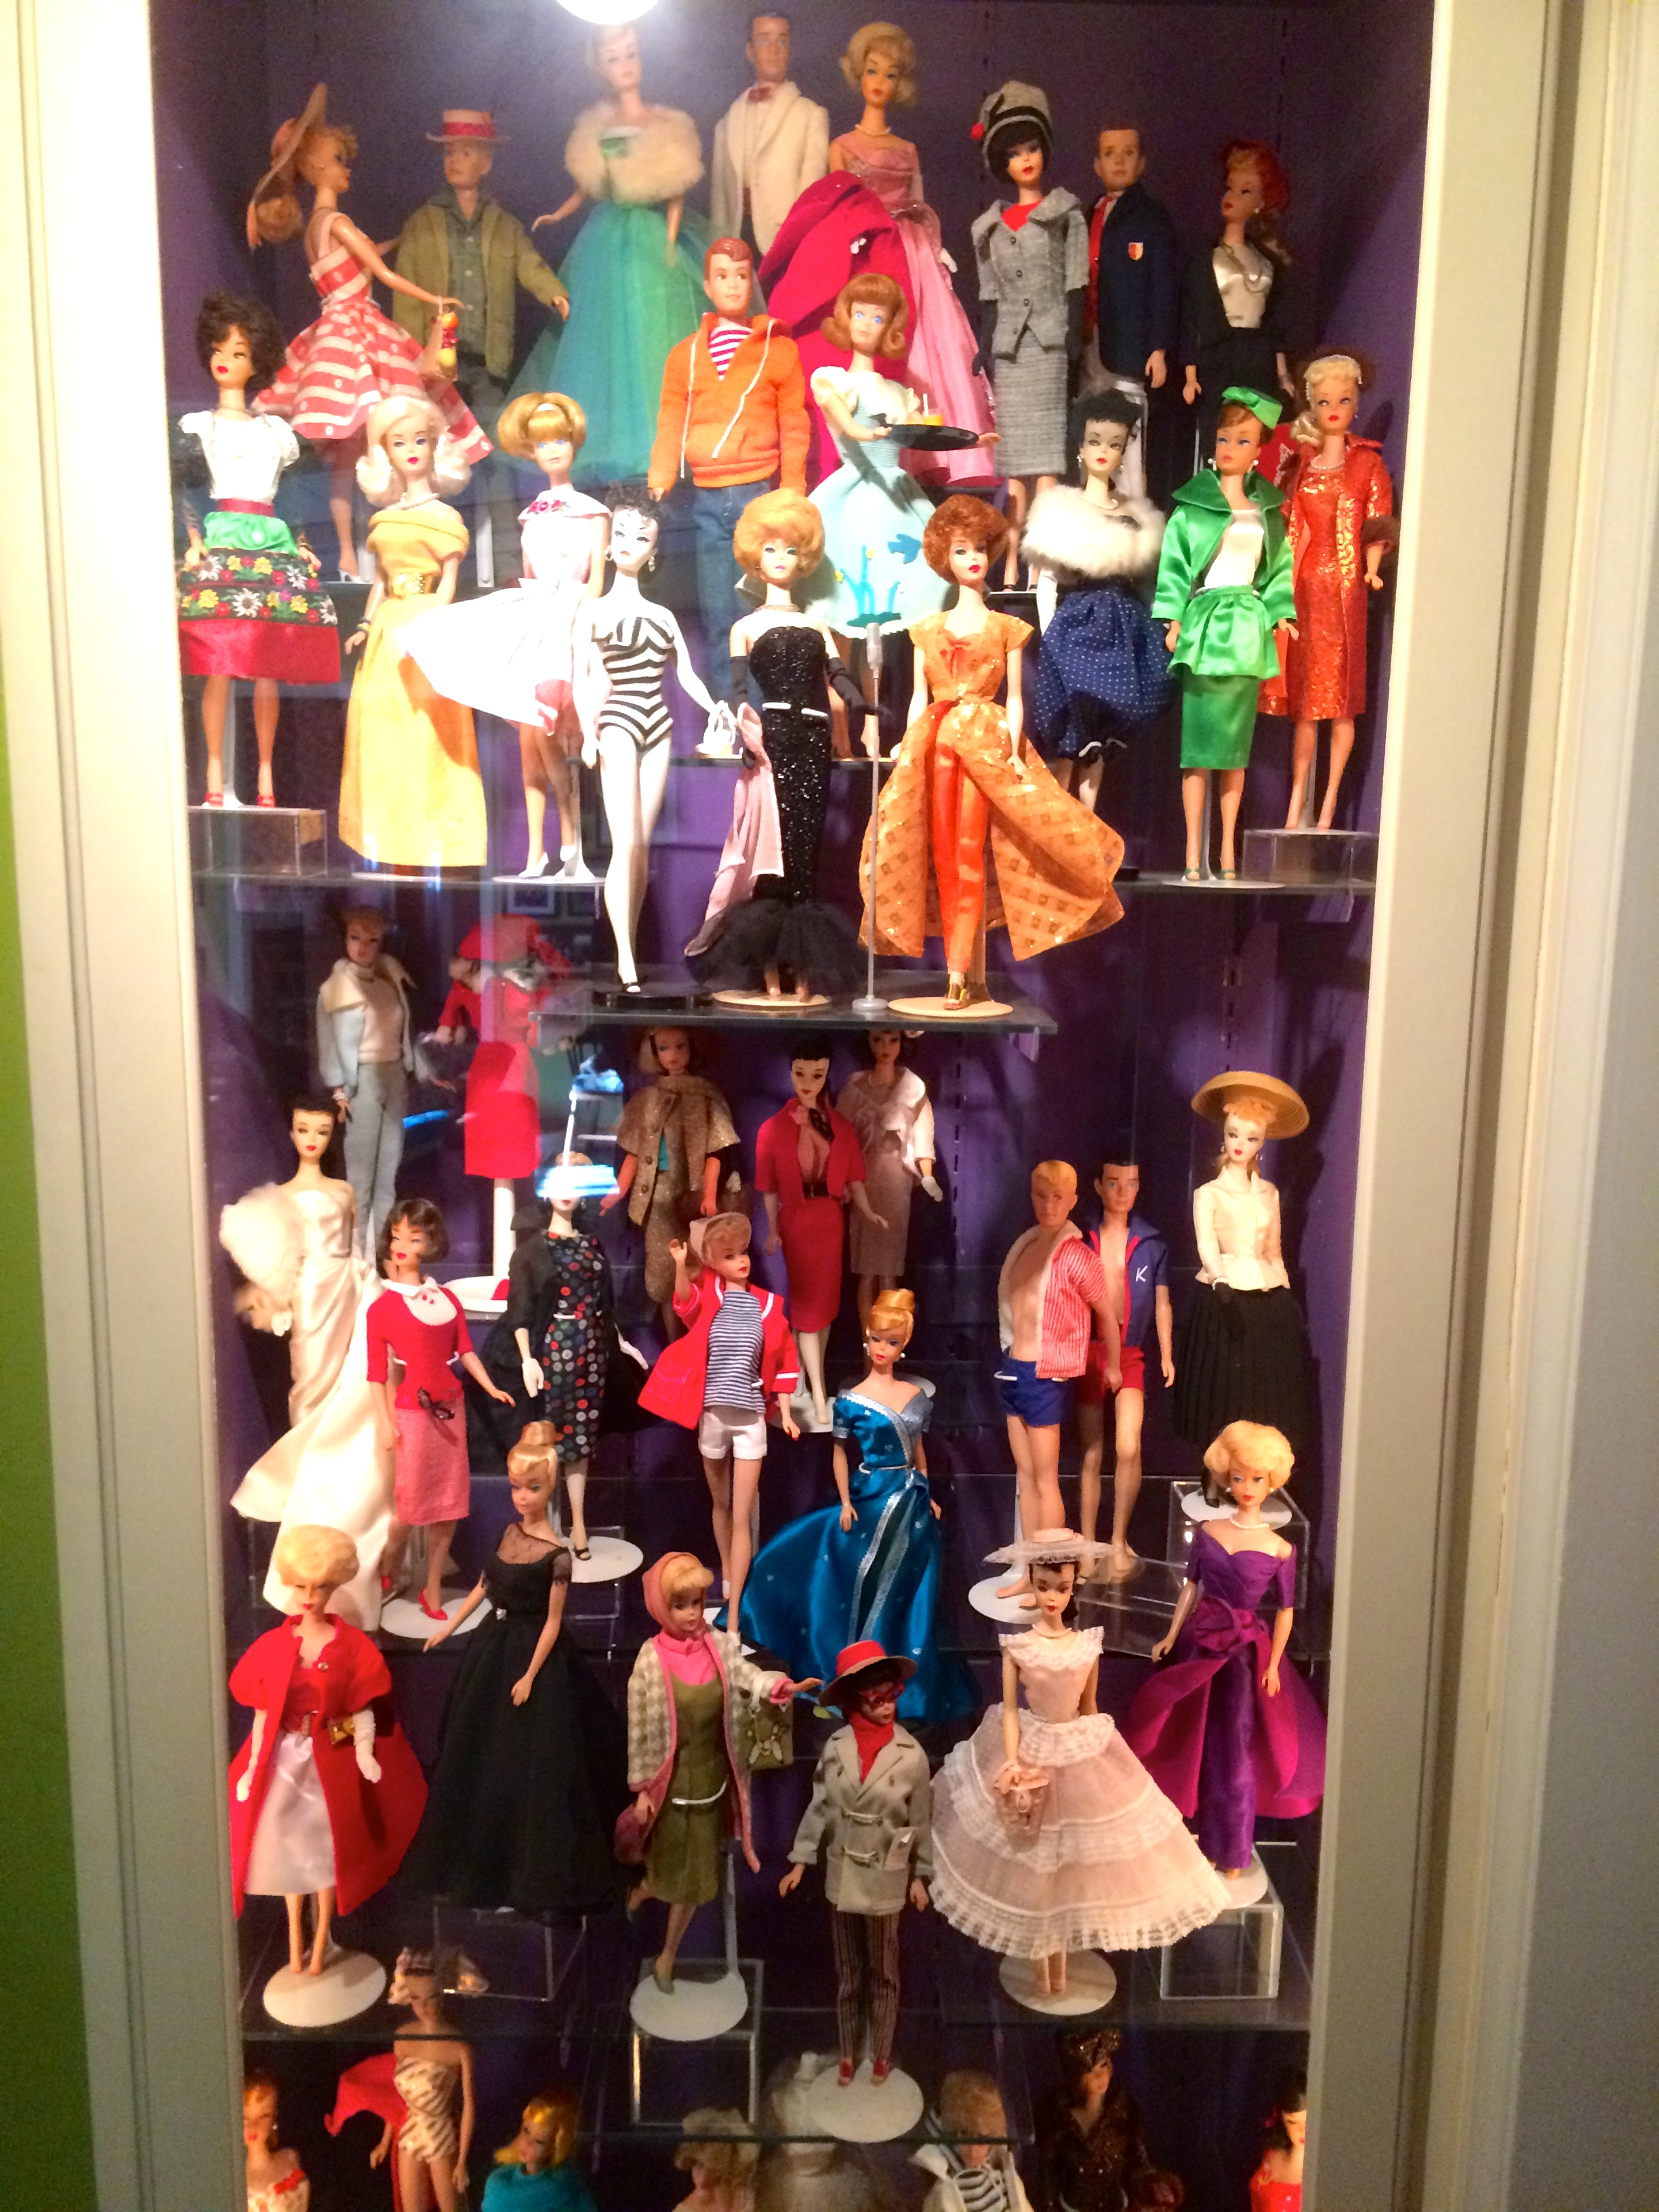 The Barbie showcase.  Solo in the Spotlight is in the center about 1/3 of the way down.